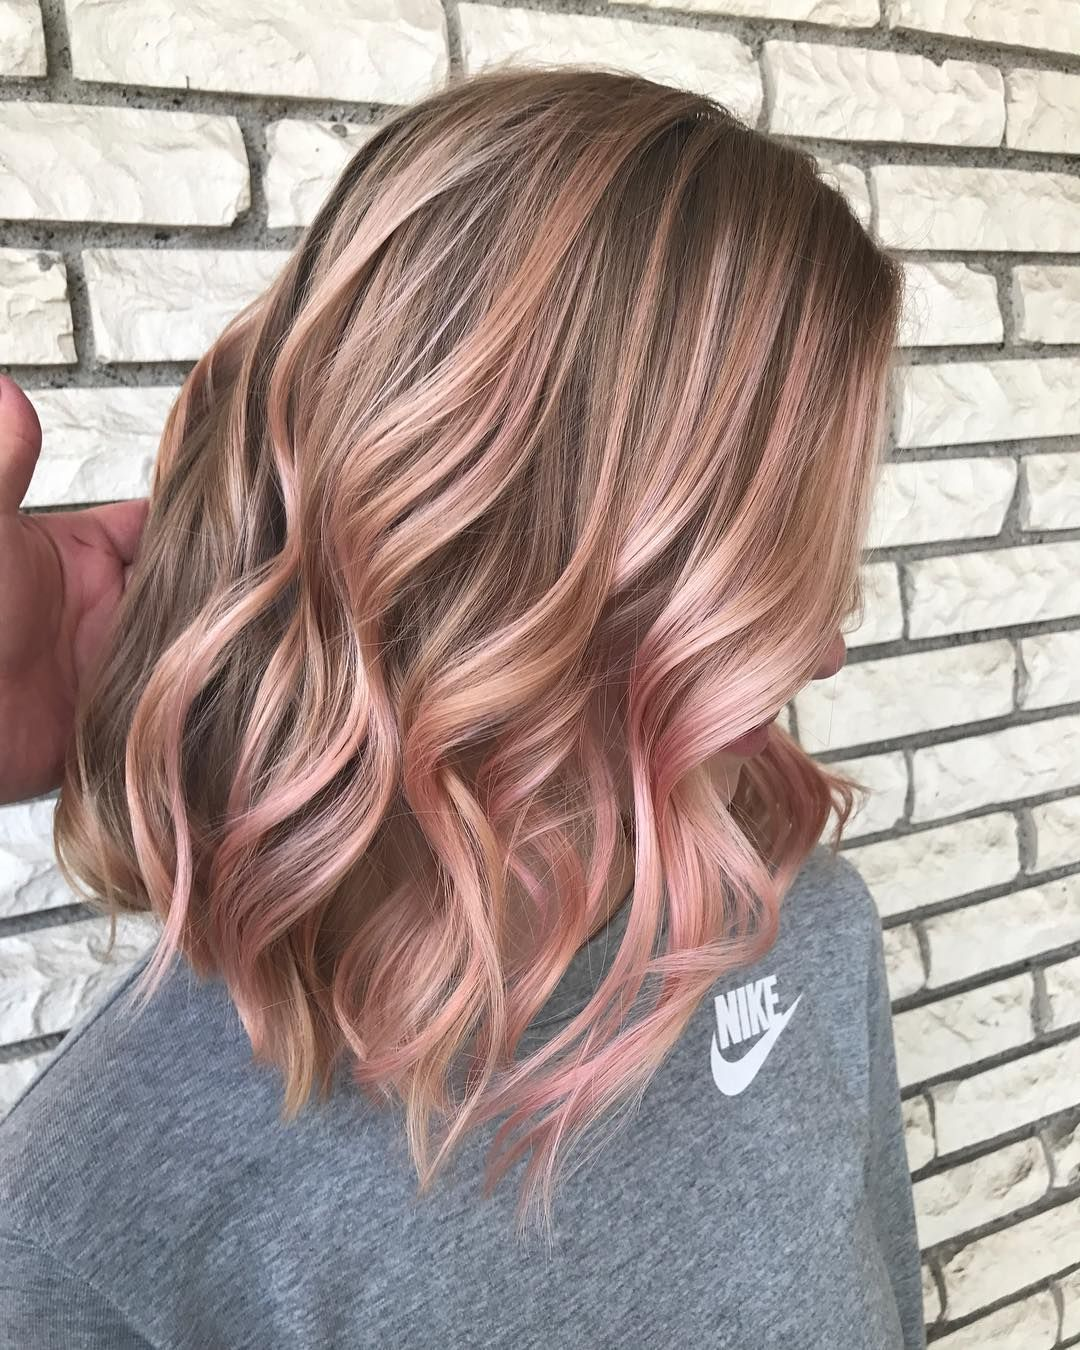 short rose gold hair color | The king in 2019 | Hair, Gold ...